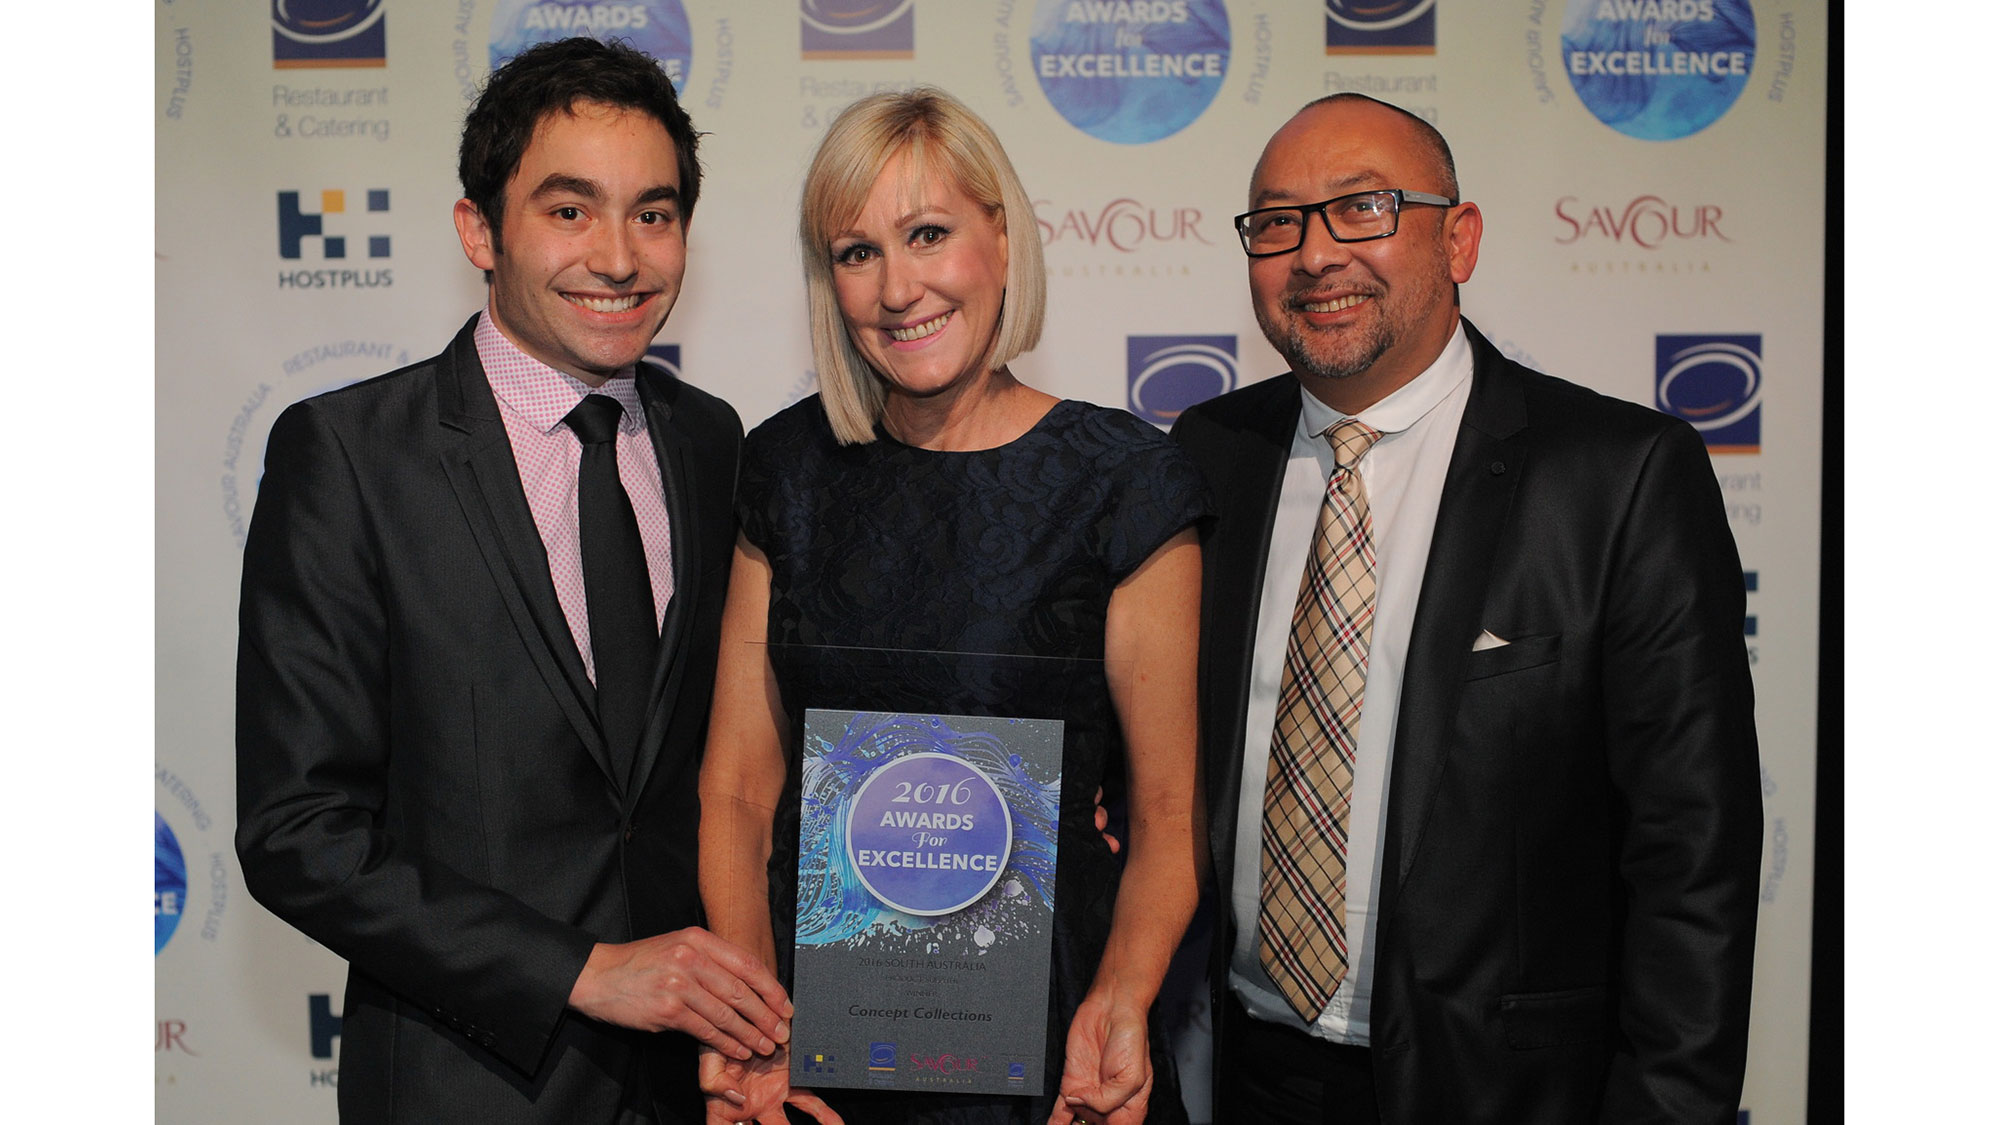 Hospitality Furniture - Product Supplier 2016 Awards for Excellence